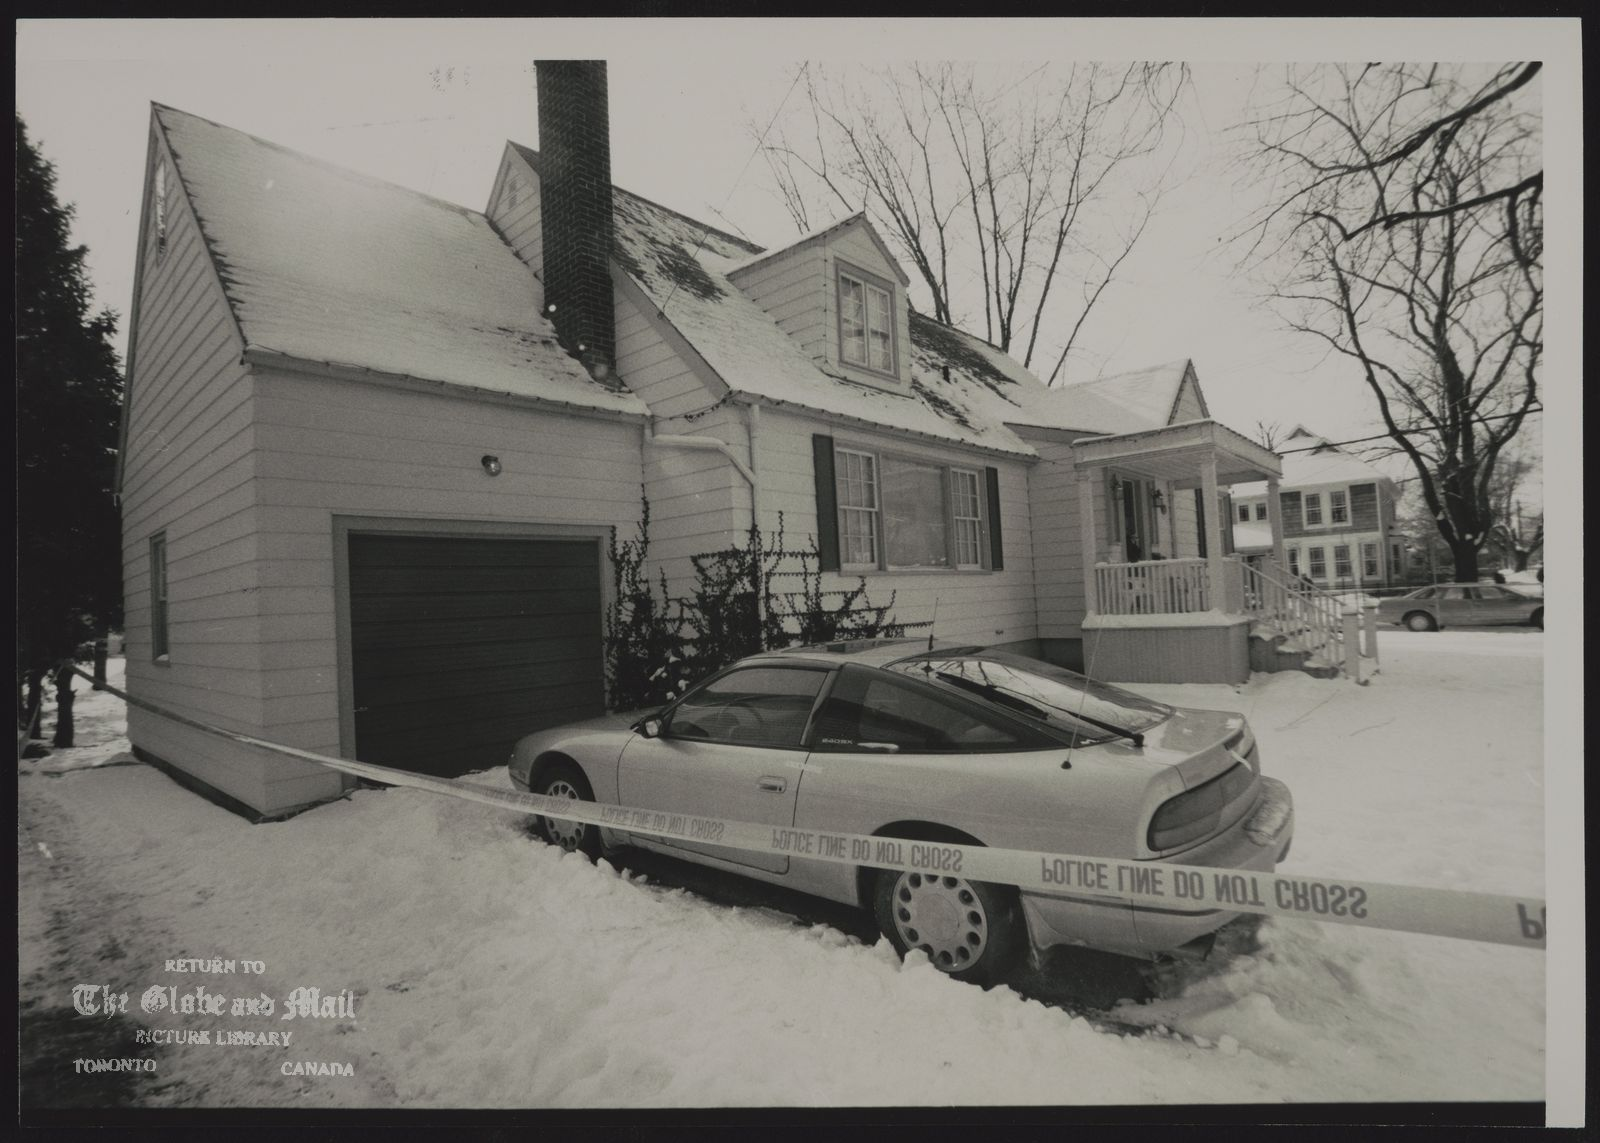 PAUL BERNARDO ST. CATHARINES. MURDER SUSPECT. PAUL BERNARDO'S CAR SITS IN DRIVEWAY BEHIND POLICE TAPE AT HIS HOME IN PORT DALHOUSIE.